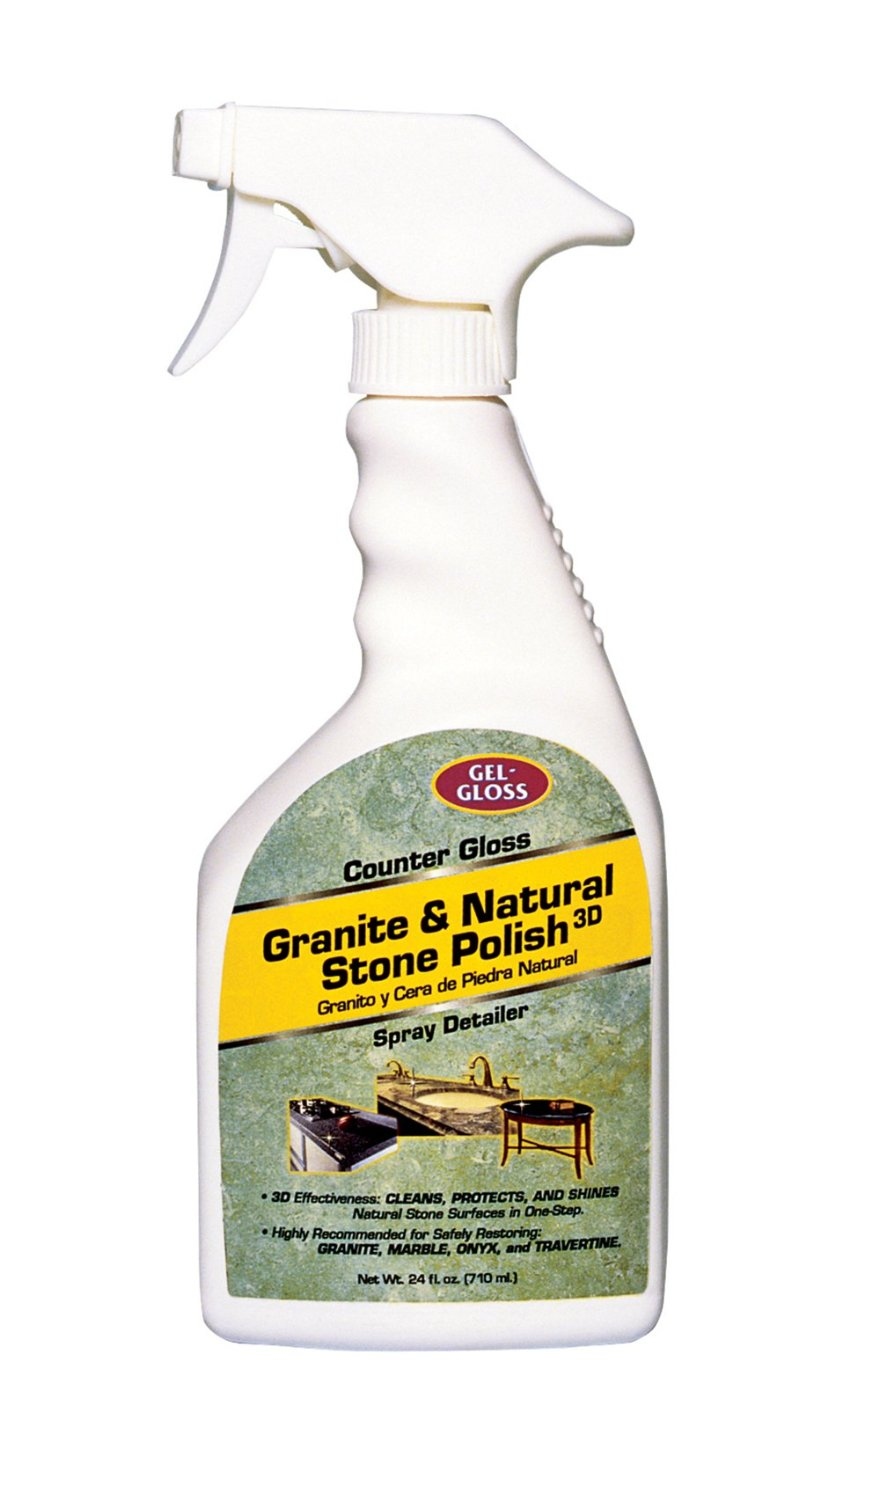 CG-24 TR Industry/ Gel Gloss Countertop Cleaner For Cleaning Granite/